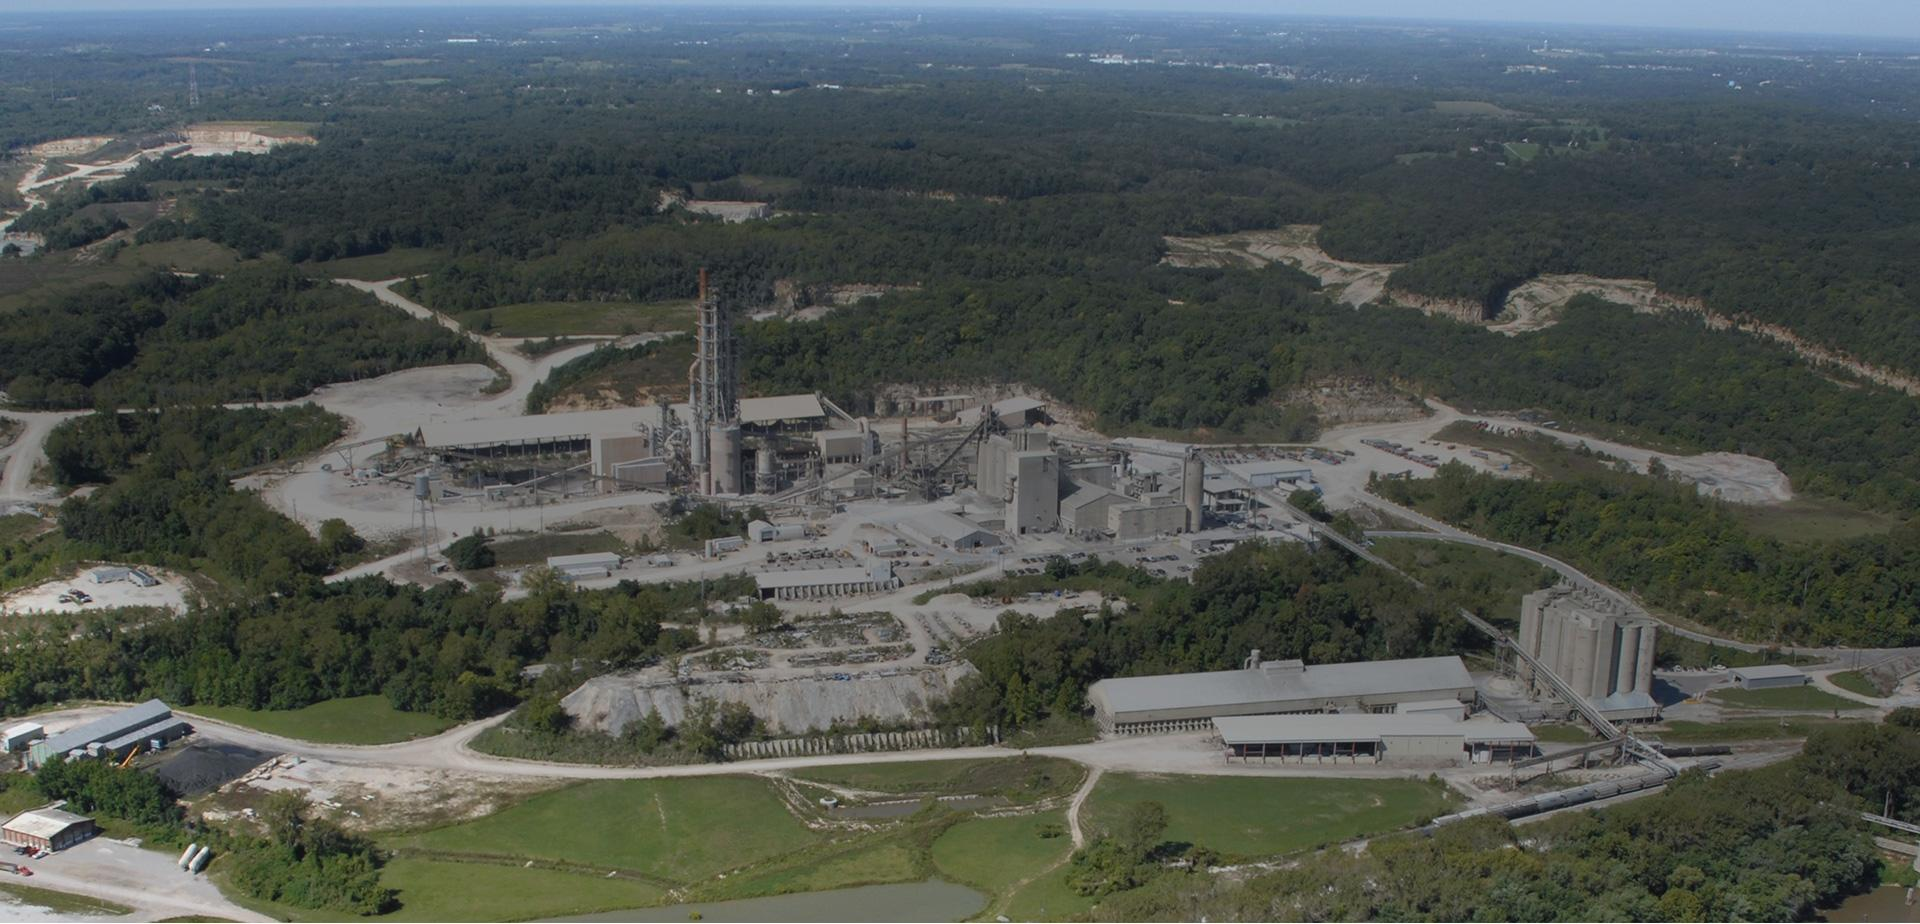 image of a cement plant